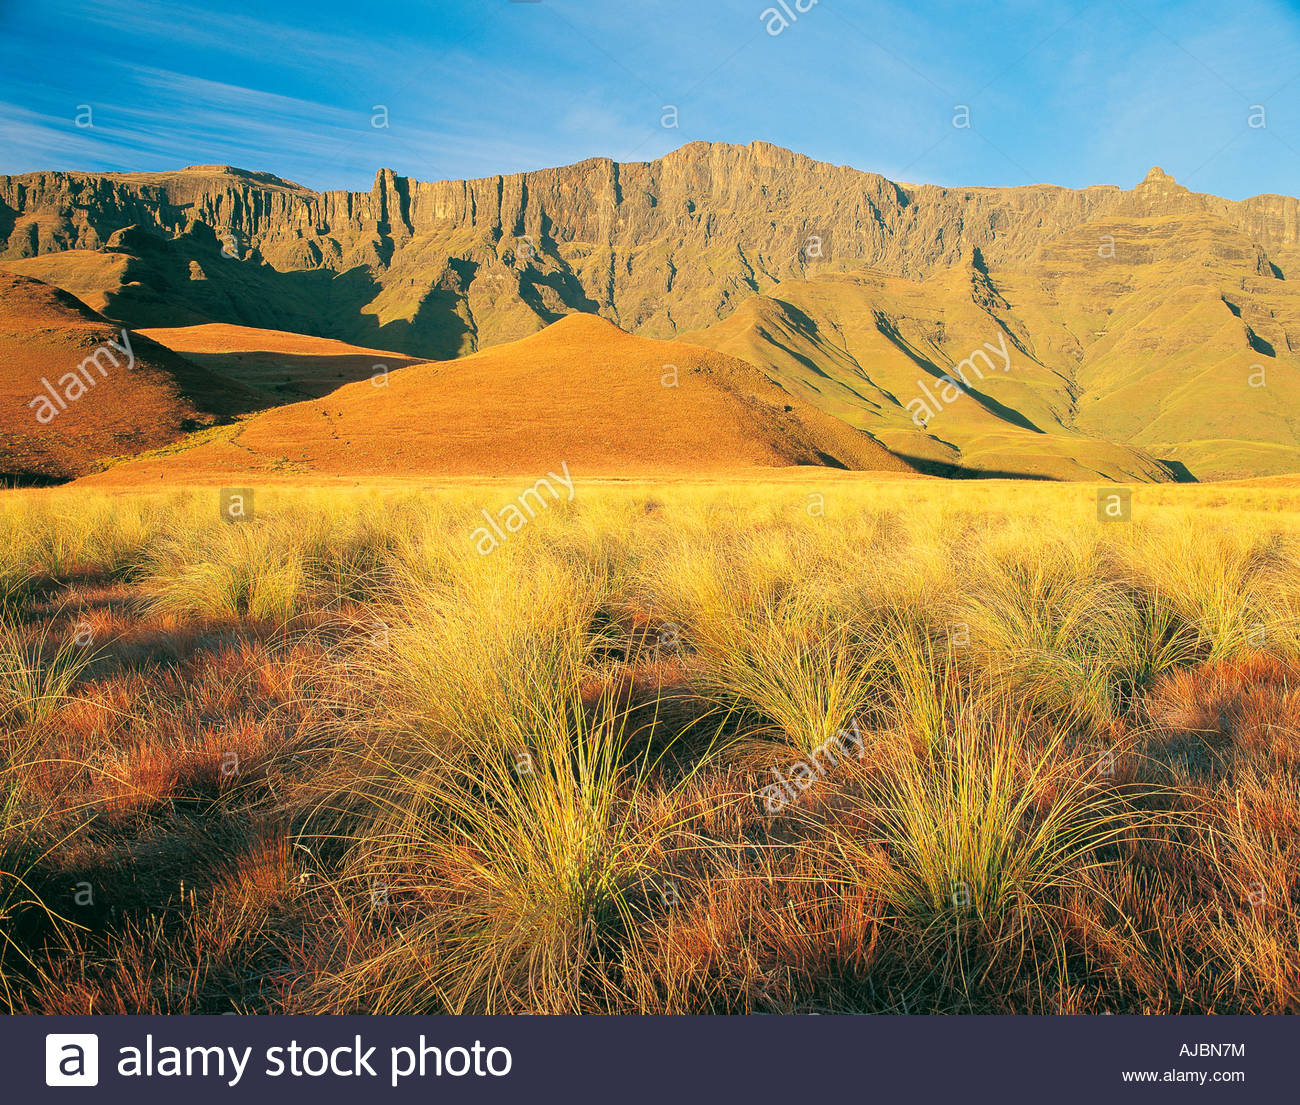 Scenic View of  the Mountain Range with Bushveld Grass in Foreground - Stock Image